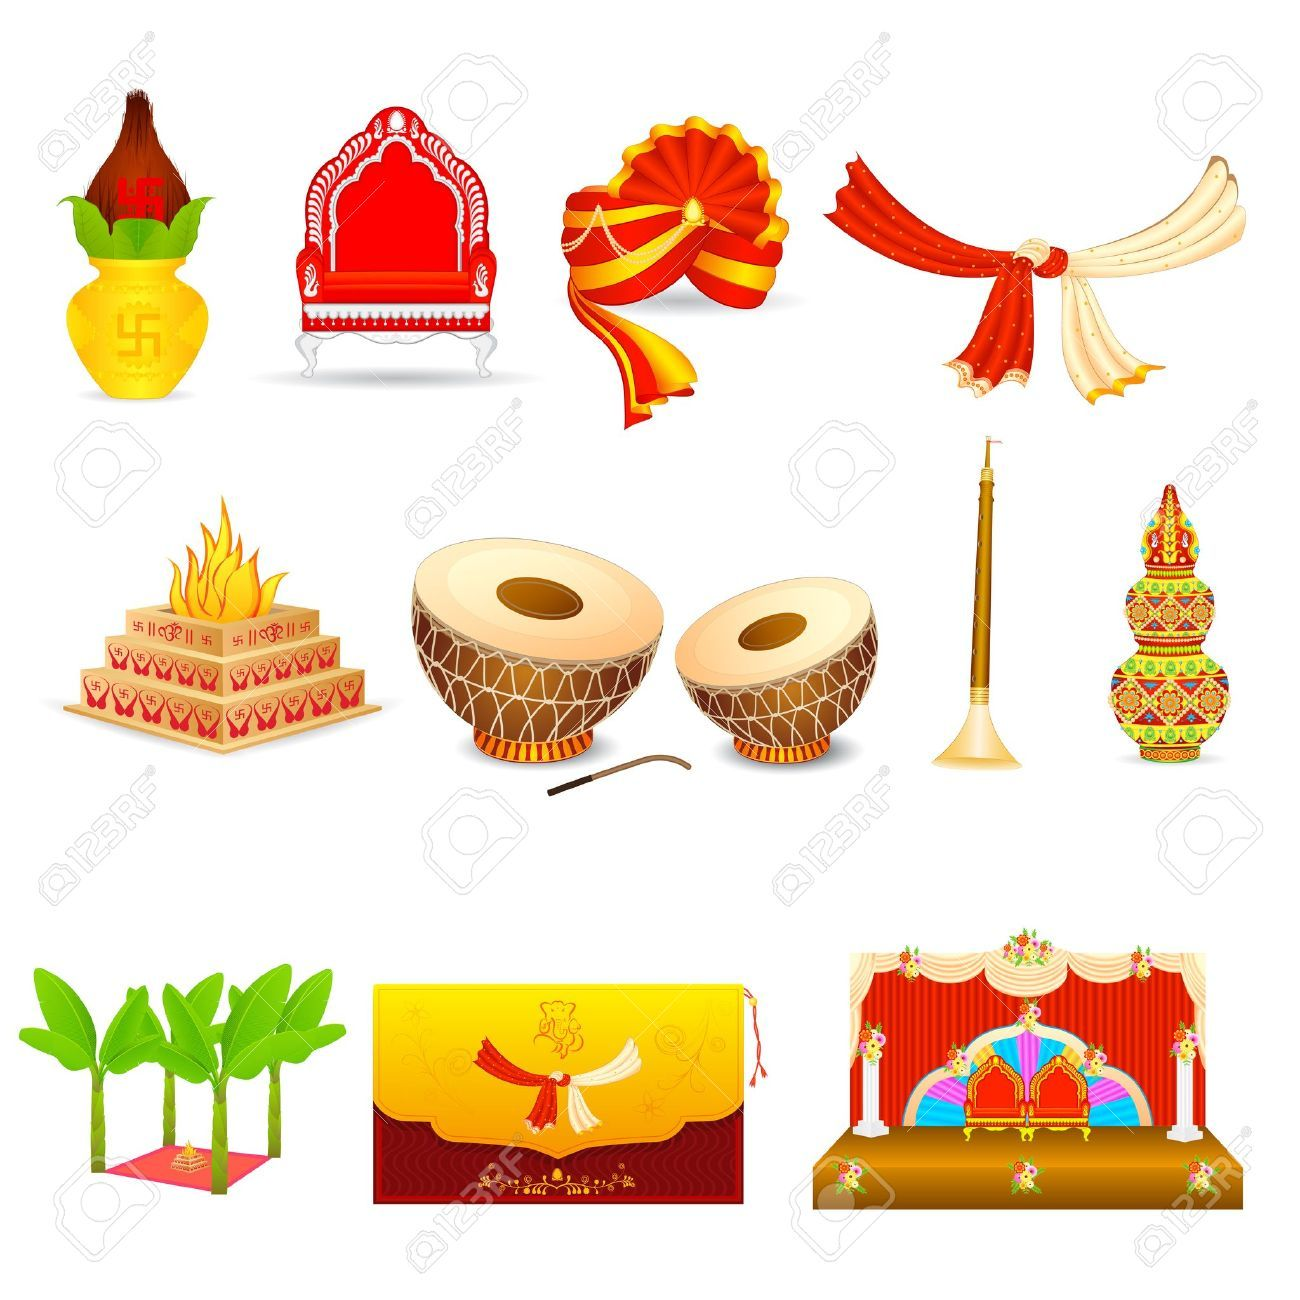 small resolution of indian wedding cliparts clipart collection